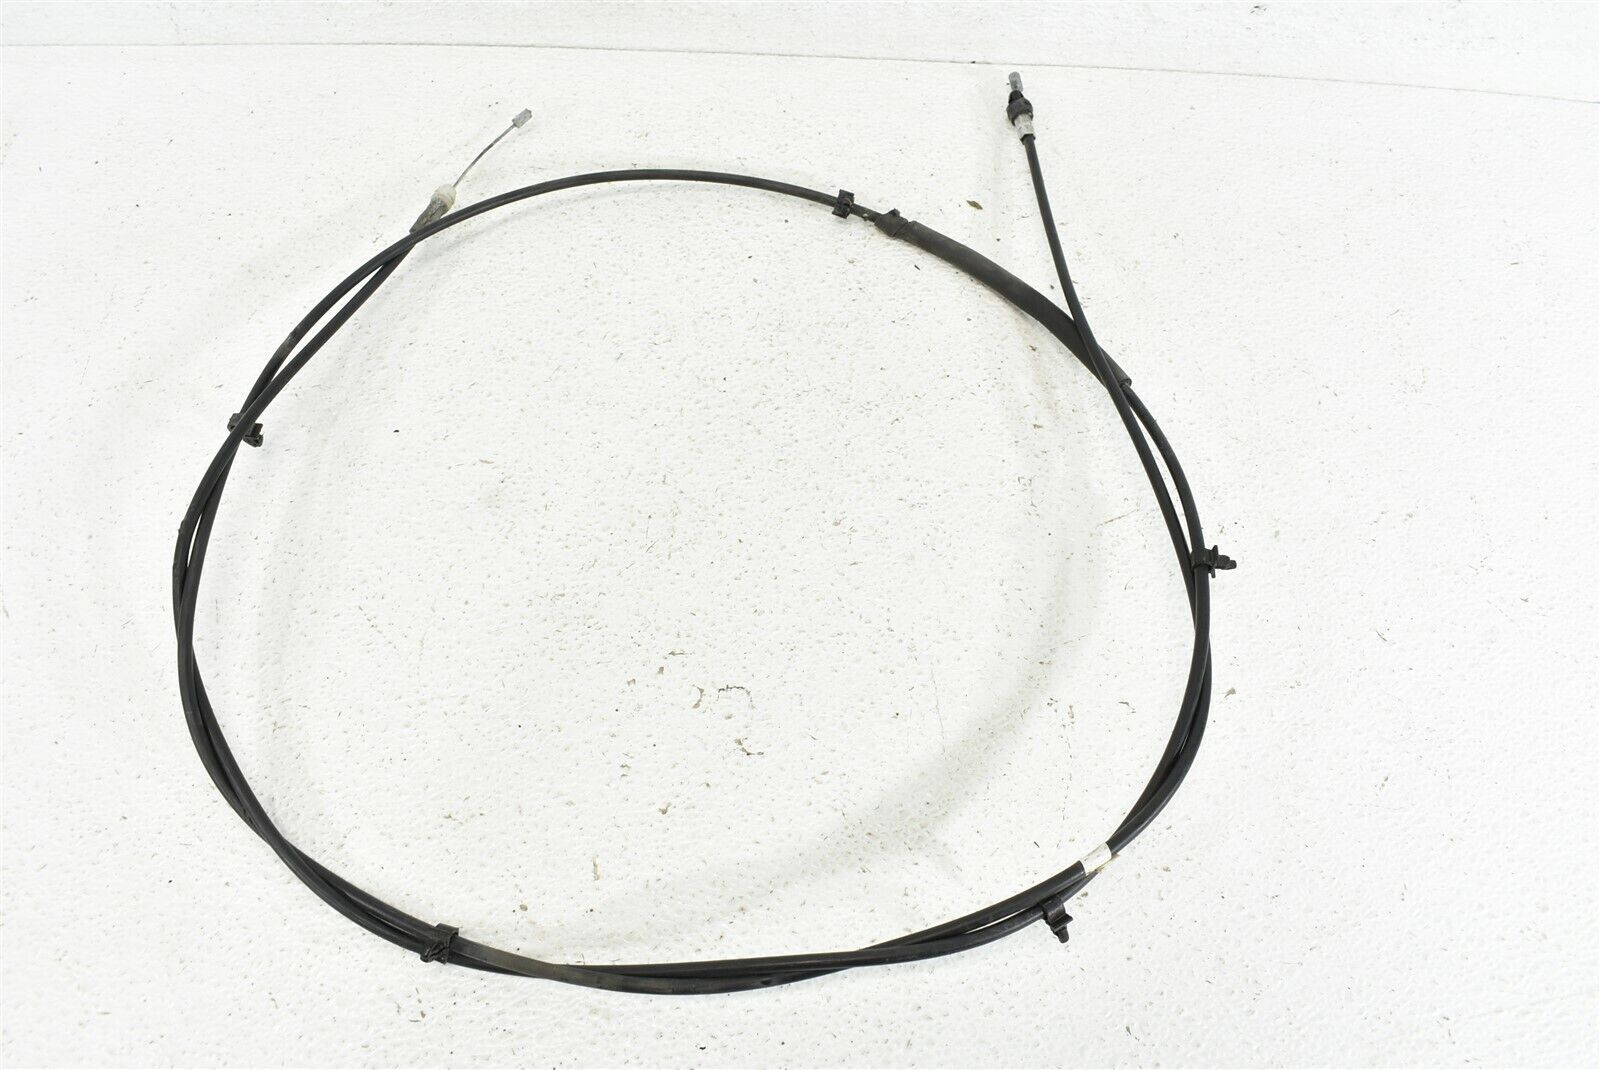 Nissan Sentra Sedan Hood Release Cable Wire 07